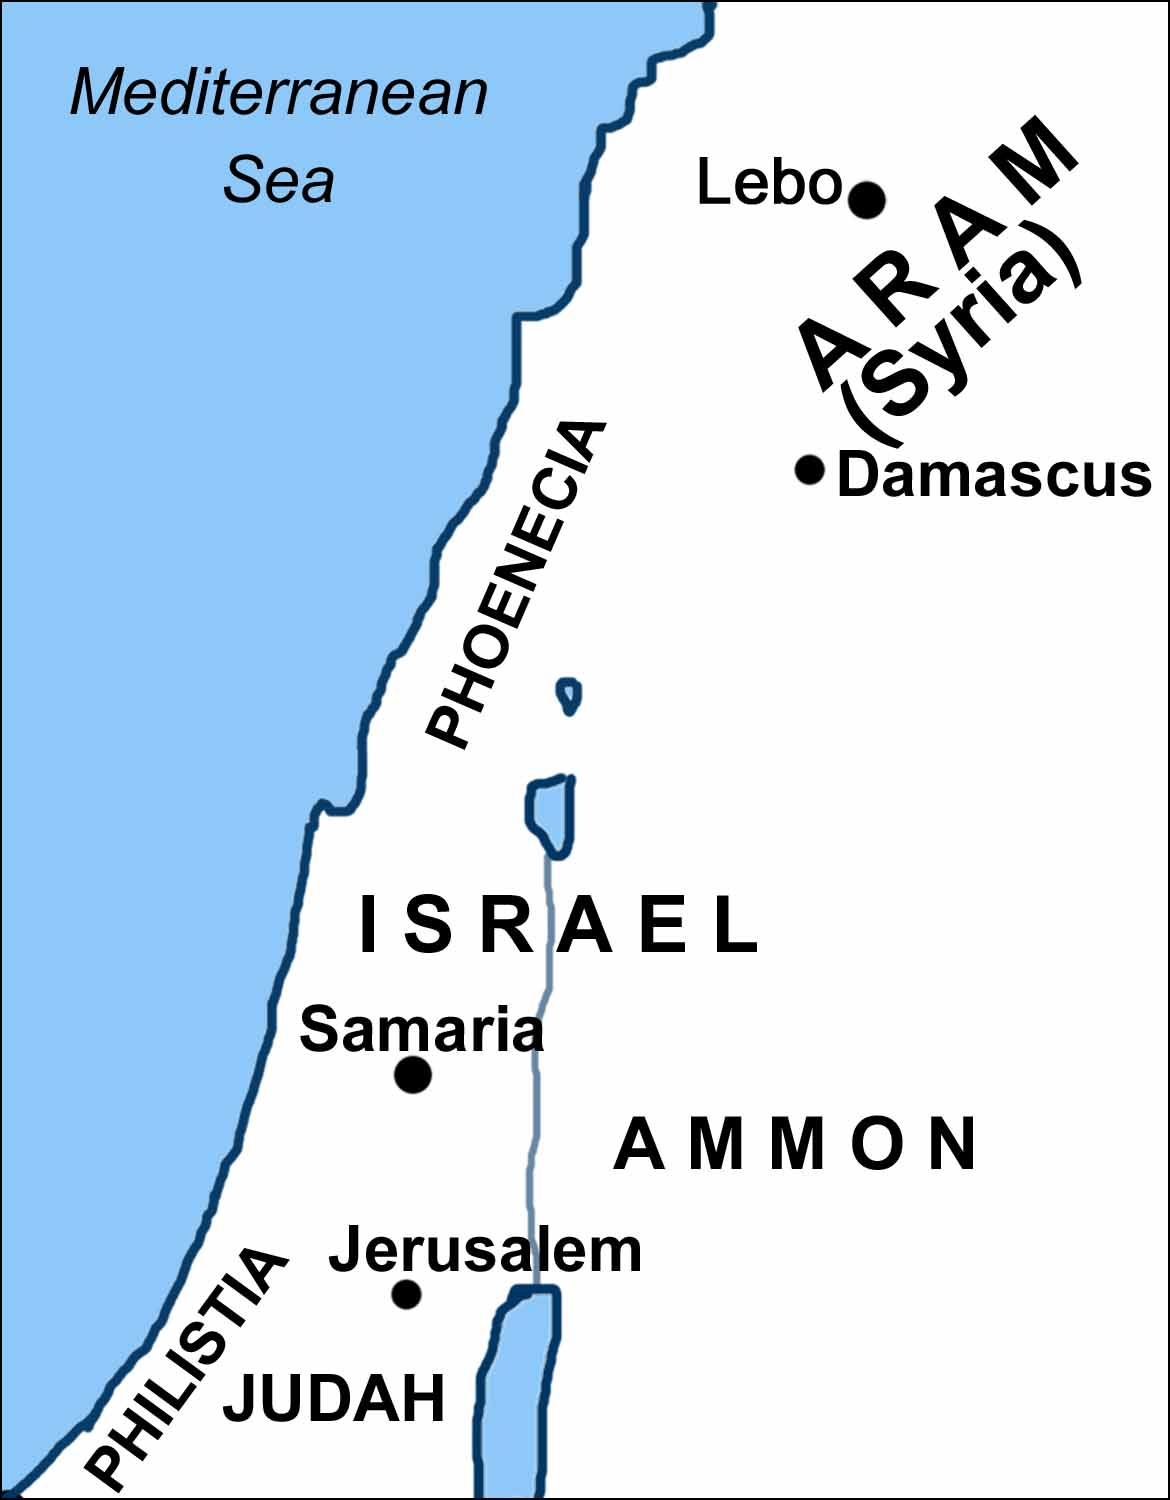 Maps Covering the Periods of Isaiah's Prophecies on aerial view of biblical israel, 10 years in israel, biblical lands of israel, printable outline map of israel, elevation of jerusalem israel, geography of biblical israel, original boundaries of israel, printable map of modern israel, old testament maps of israel, printable map of israel today, topological map israel,